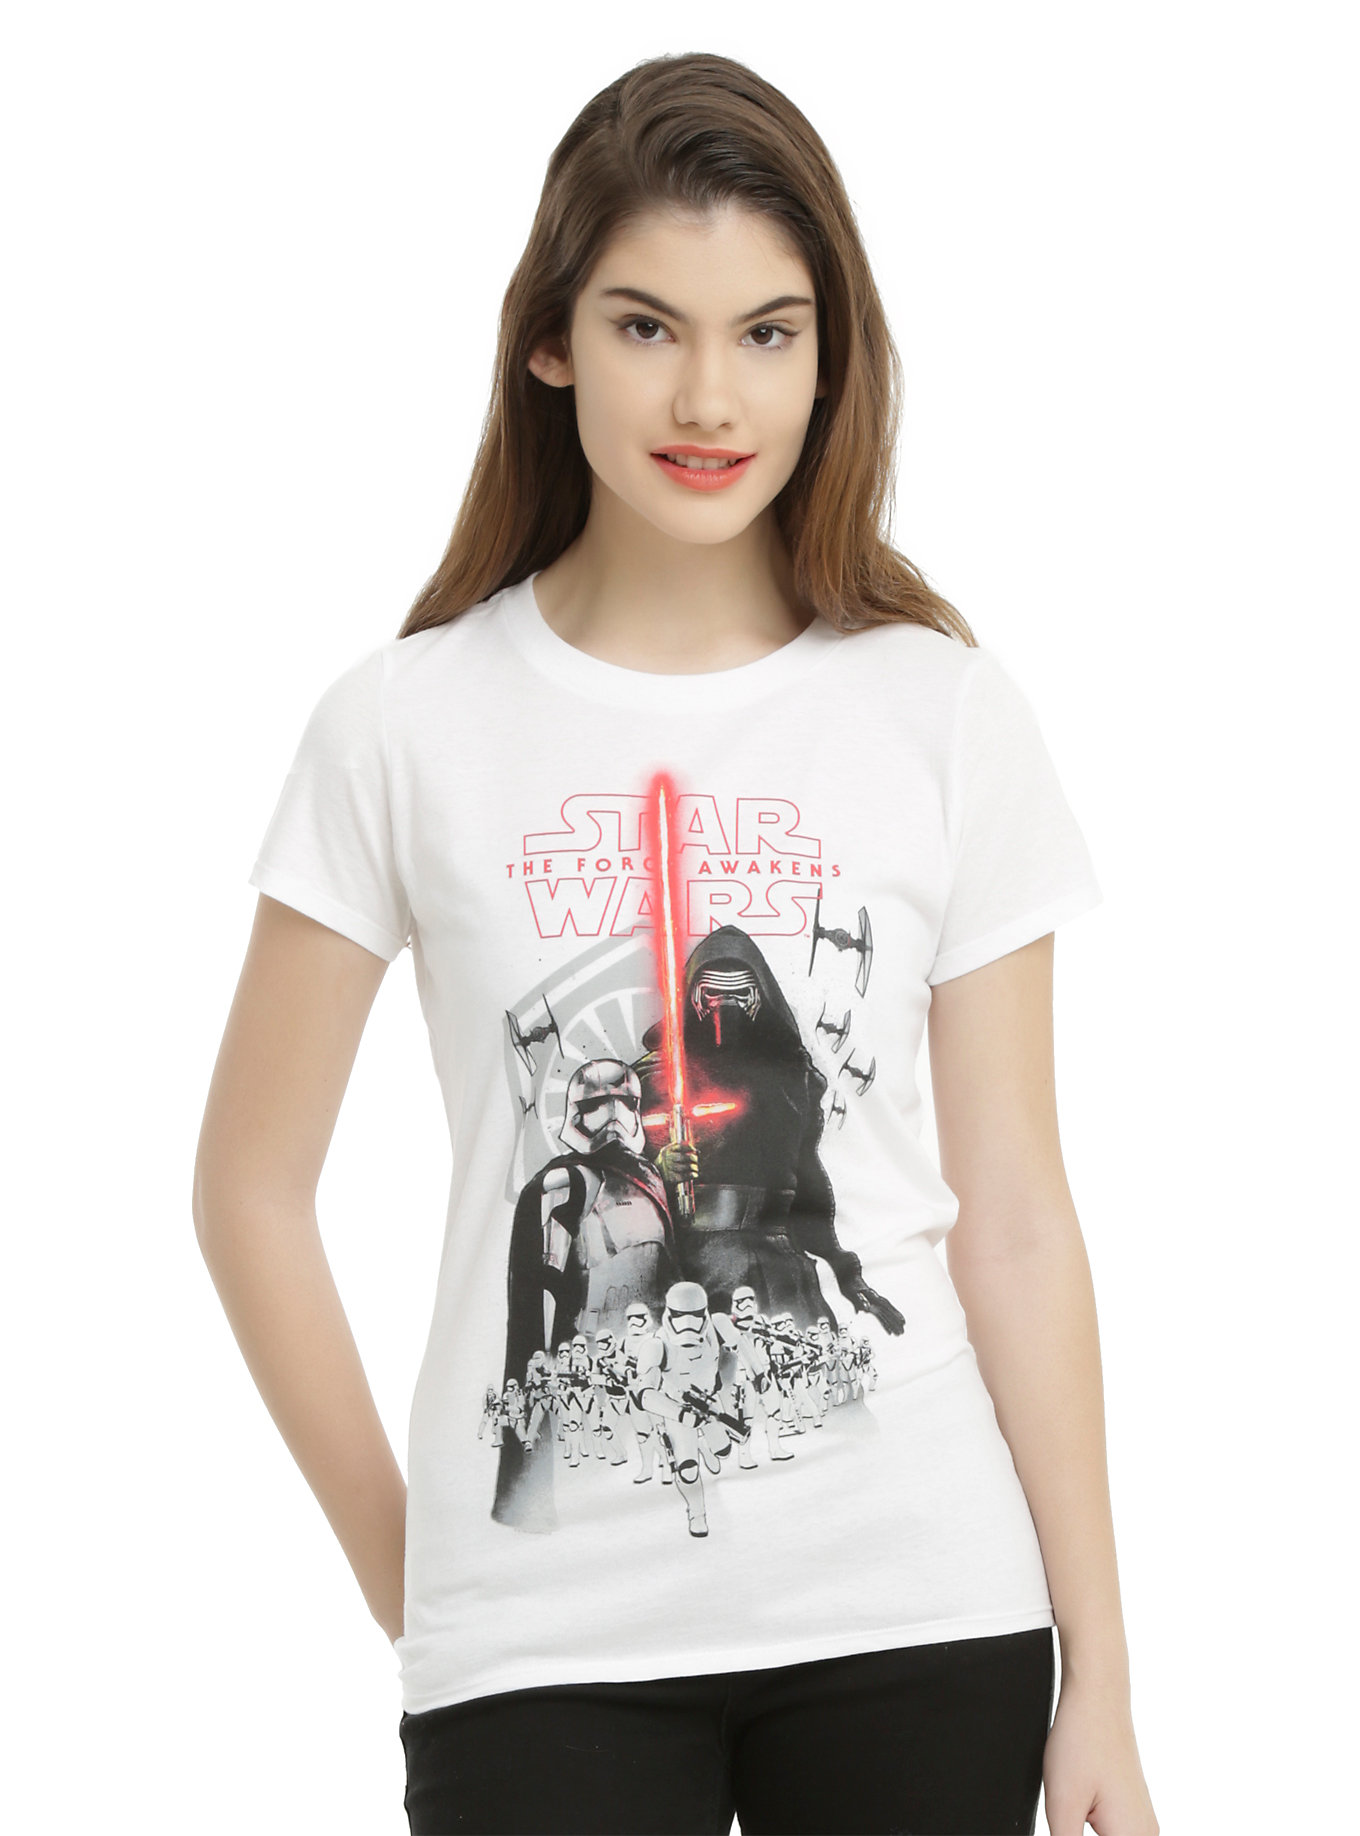 New First Order tee at Hot Topic